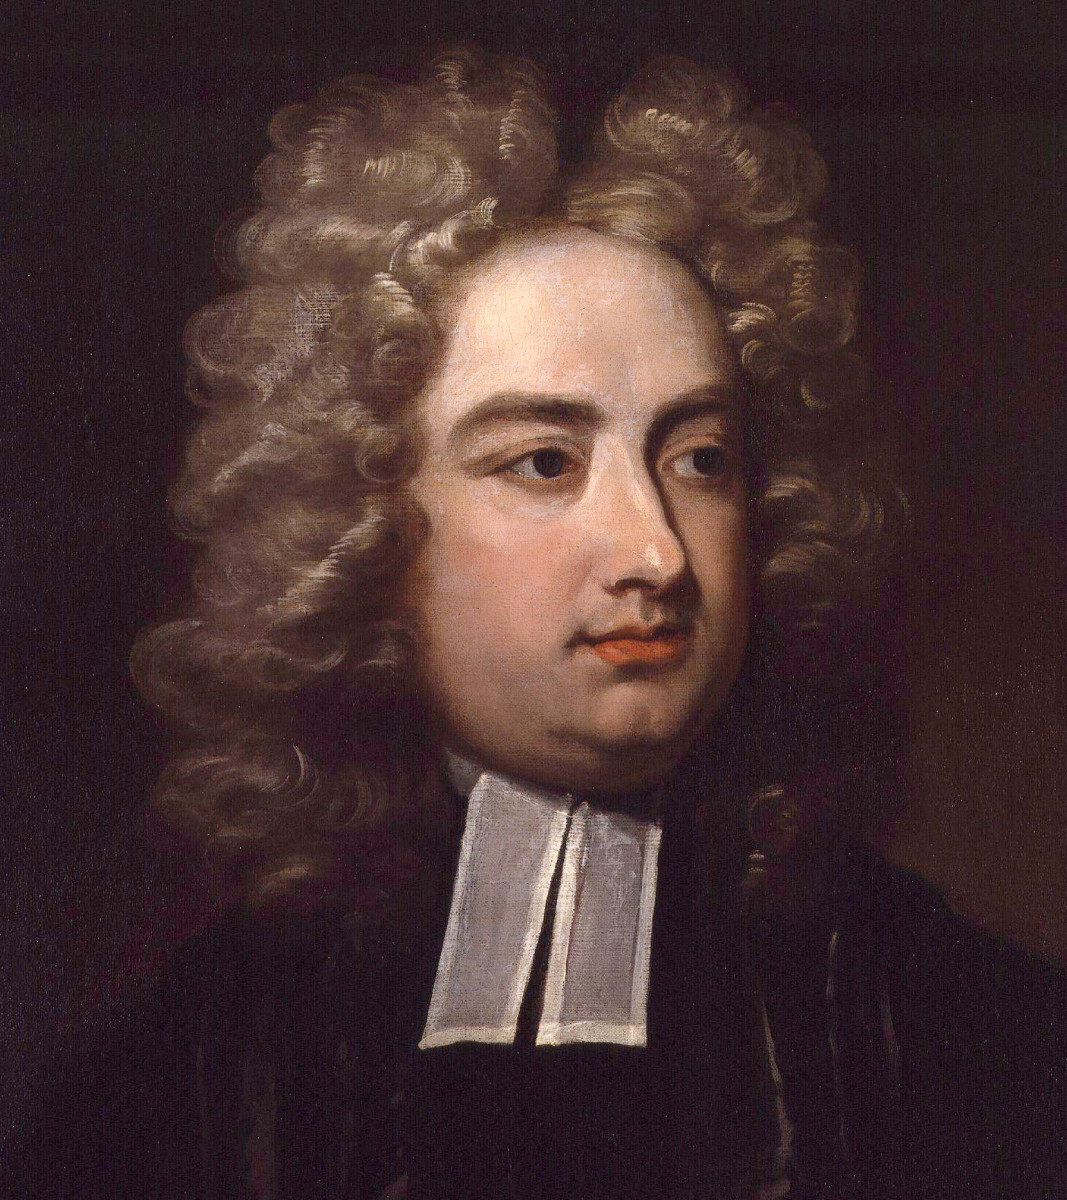 Jonathan Swift Painting By Charles Jervas via Wikimedia Commons